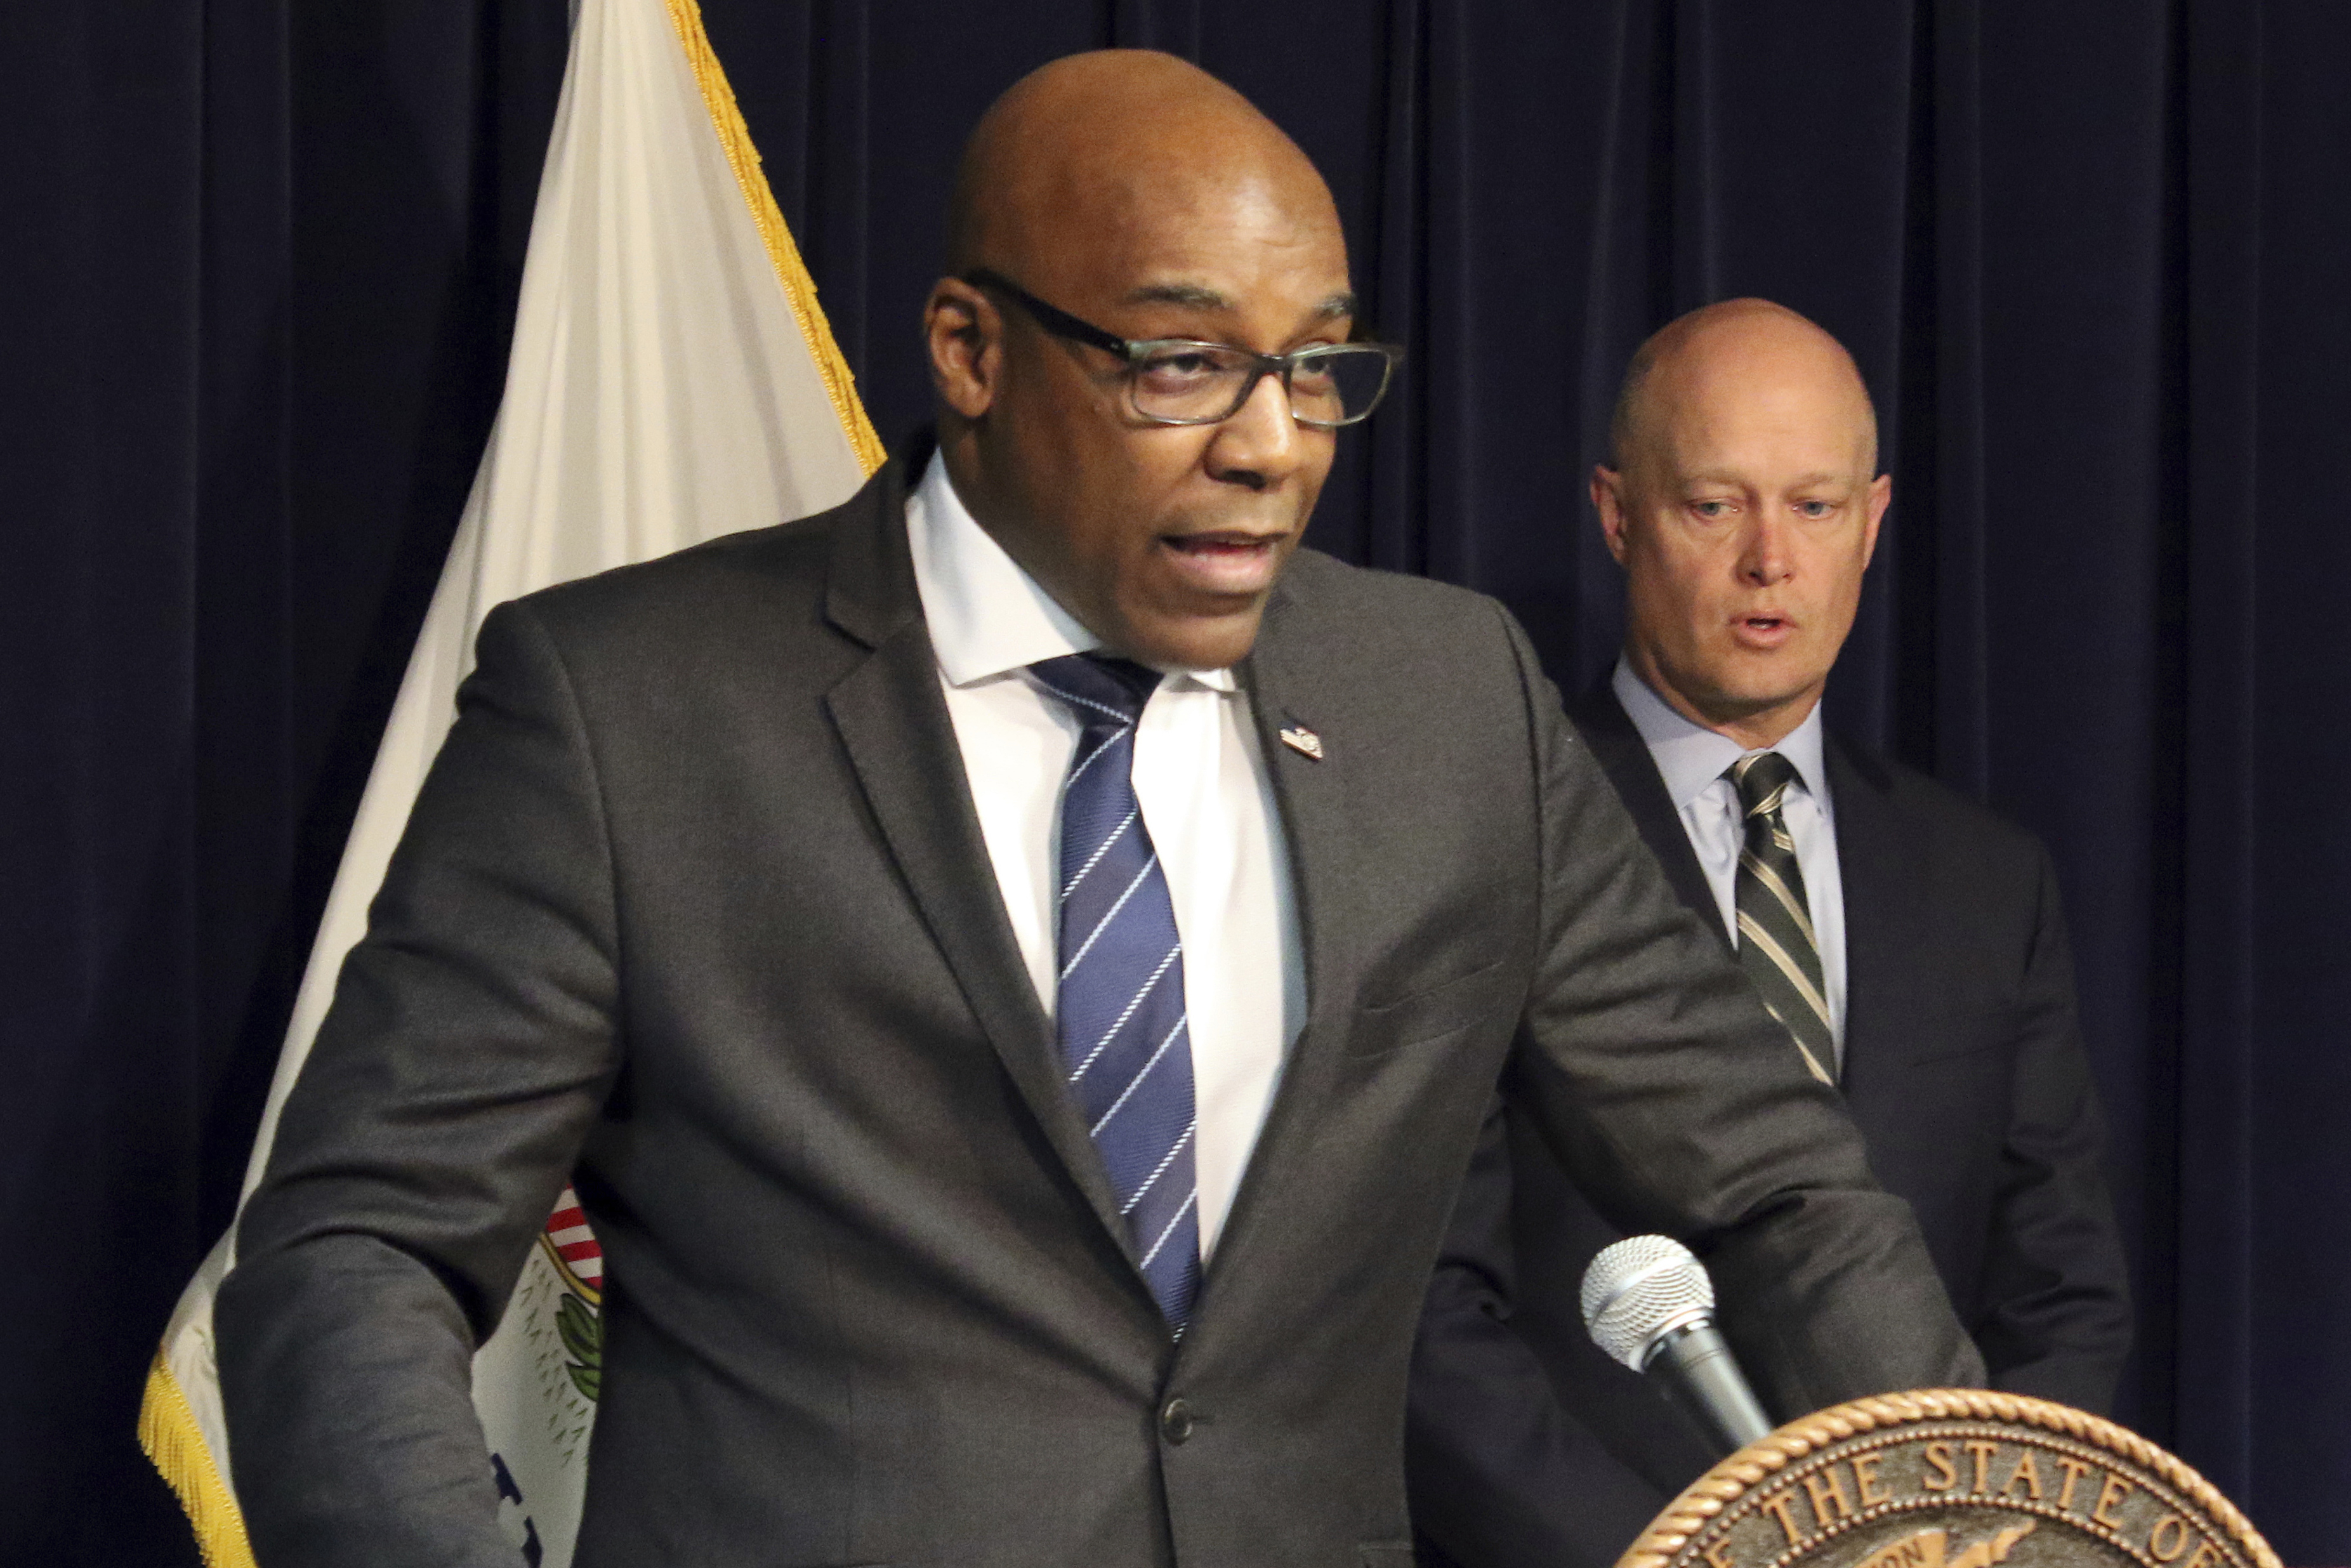 Illinois Attorney General Kwame Raoul speaks during a news conference in Chicago in February 2019.